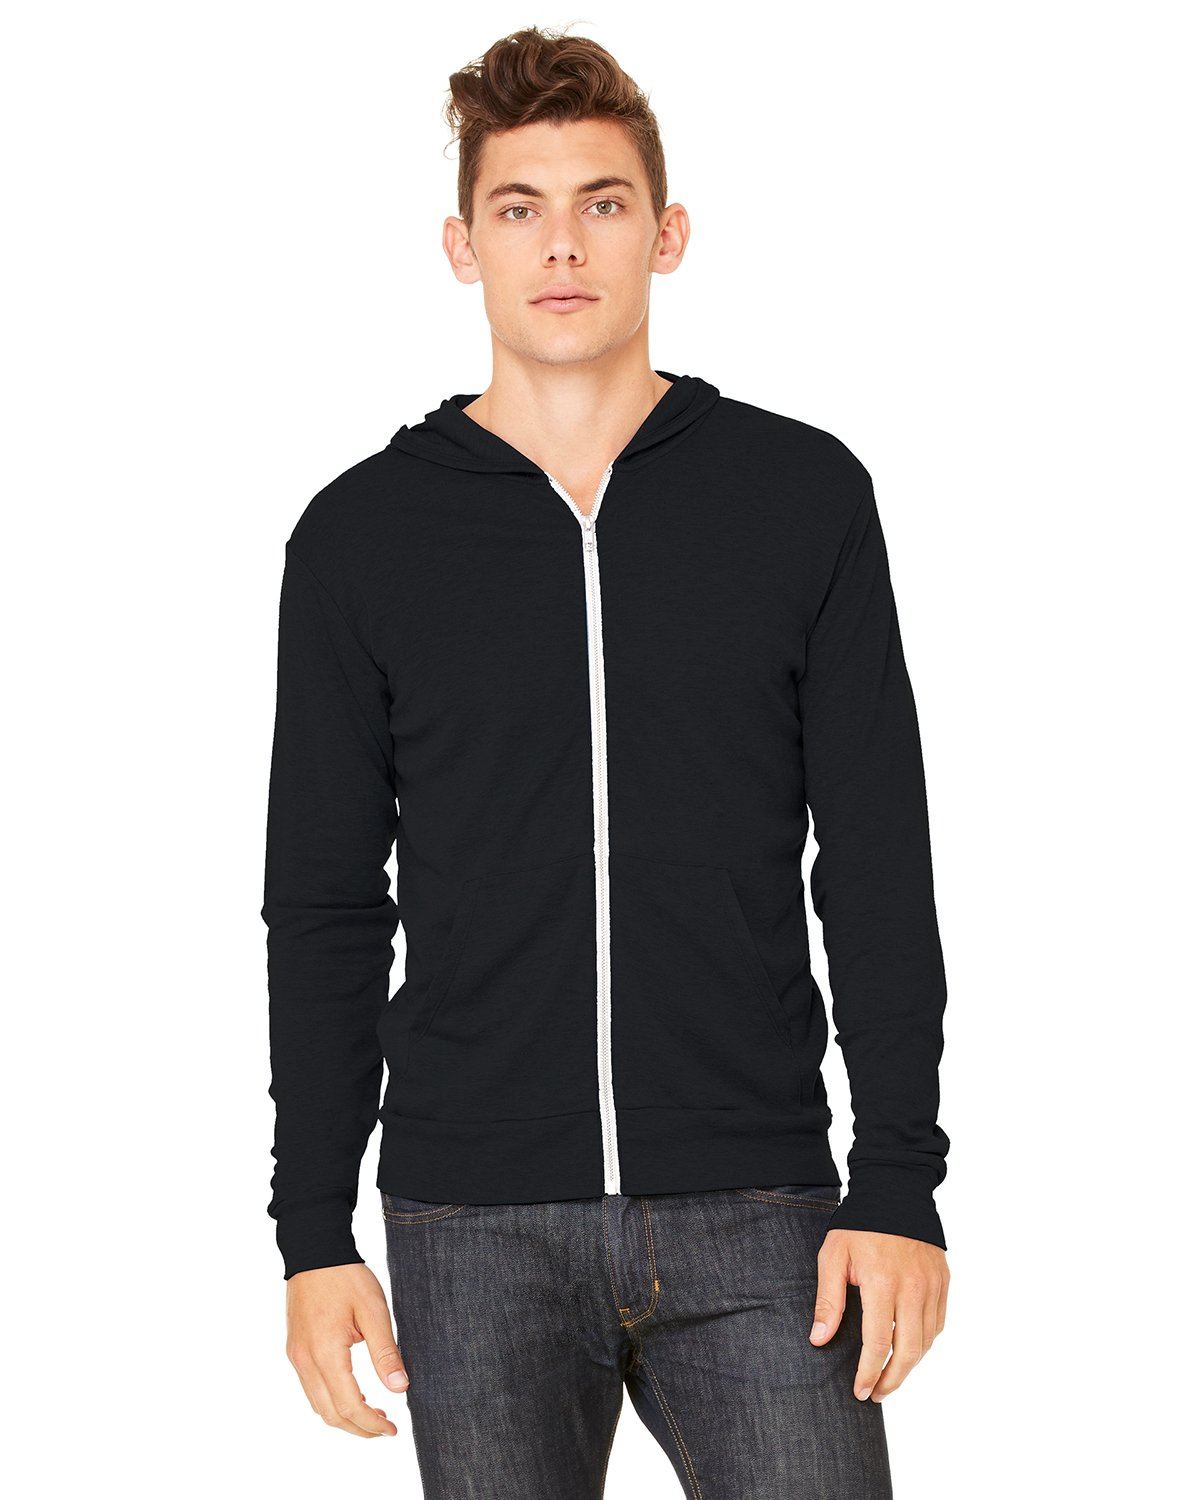 Bella + Canvas - 3939 - Unisex Triblend Full-Zip Lightweight Hoodie